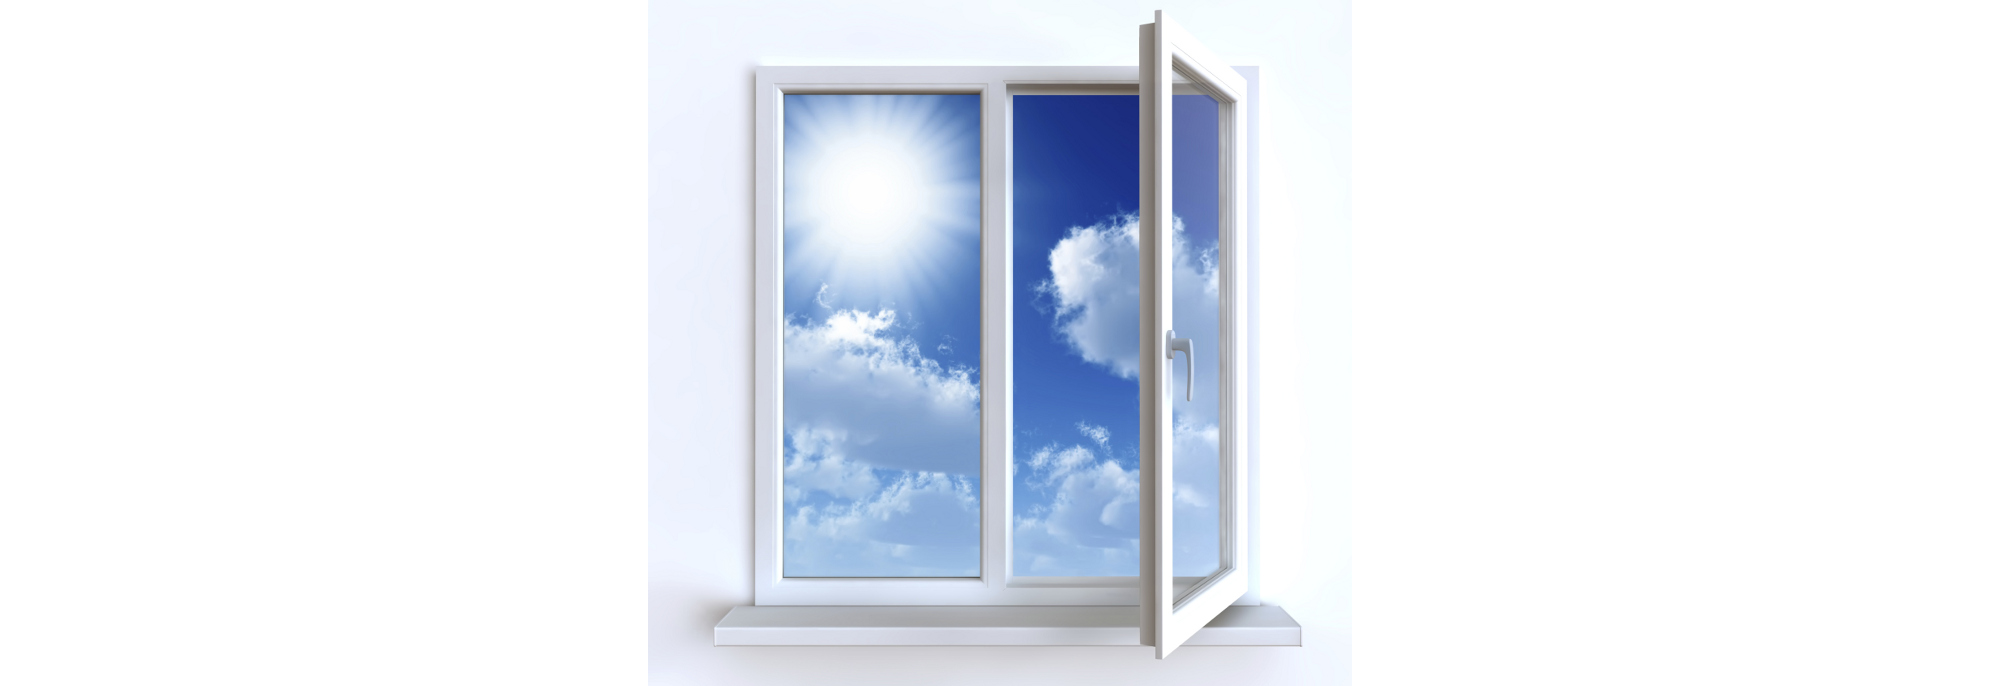 Energy efficient windows sol solutions dallas for Efficient windows